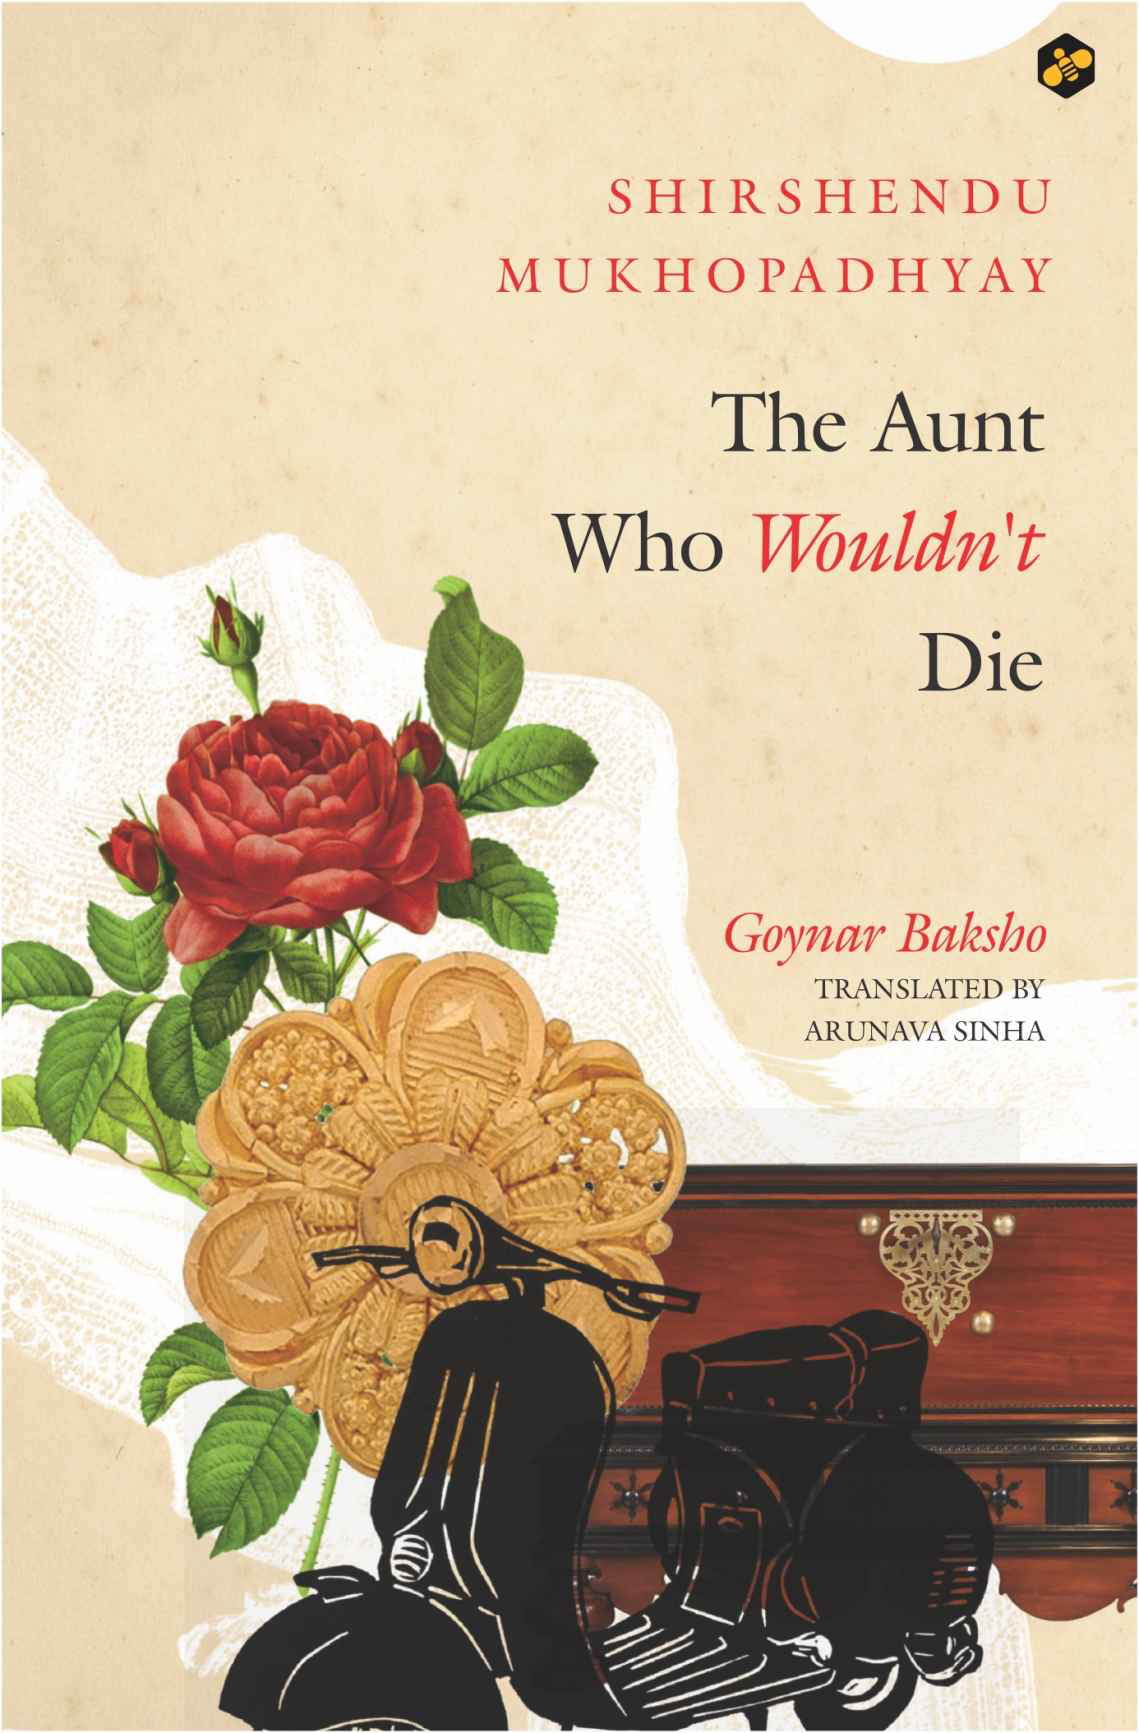 Shirshendu Mukhopadhyay, translated by Arunava Sinha <em>The Aunt Who Wouldn't Die</em> BEE Books, 2017